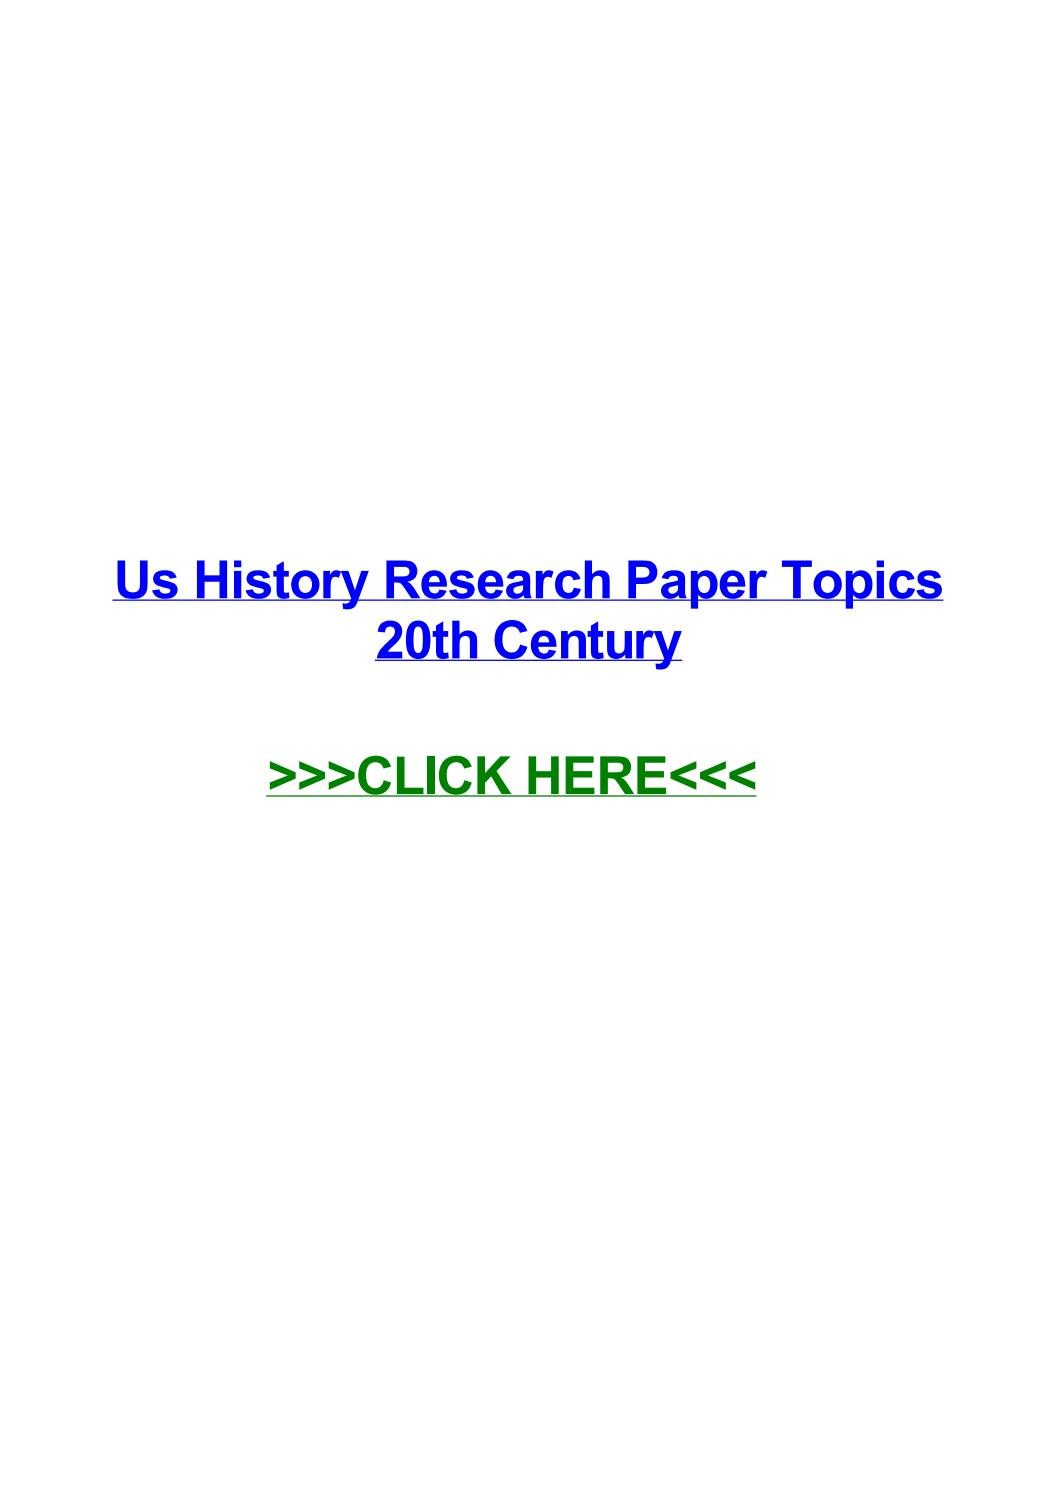 006 Page 1 Research Paper History Topics 20th Stupendous Century Art World Full